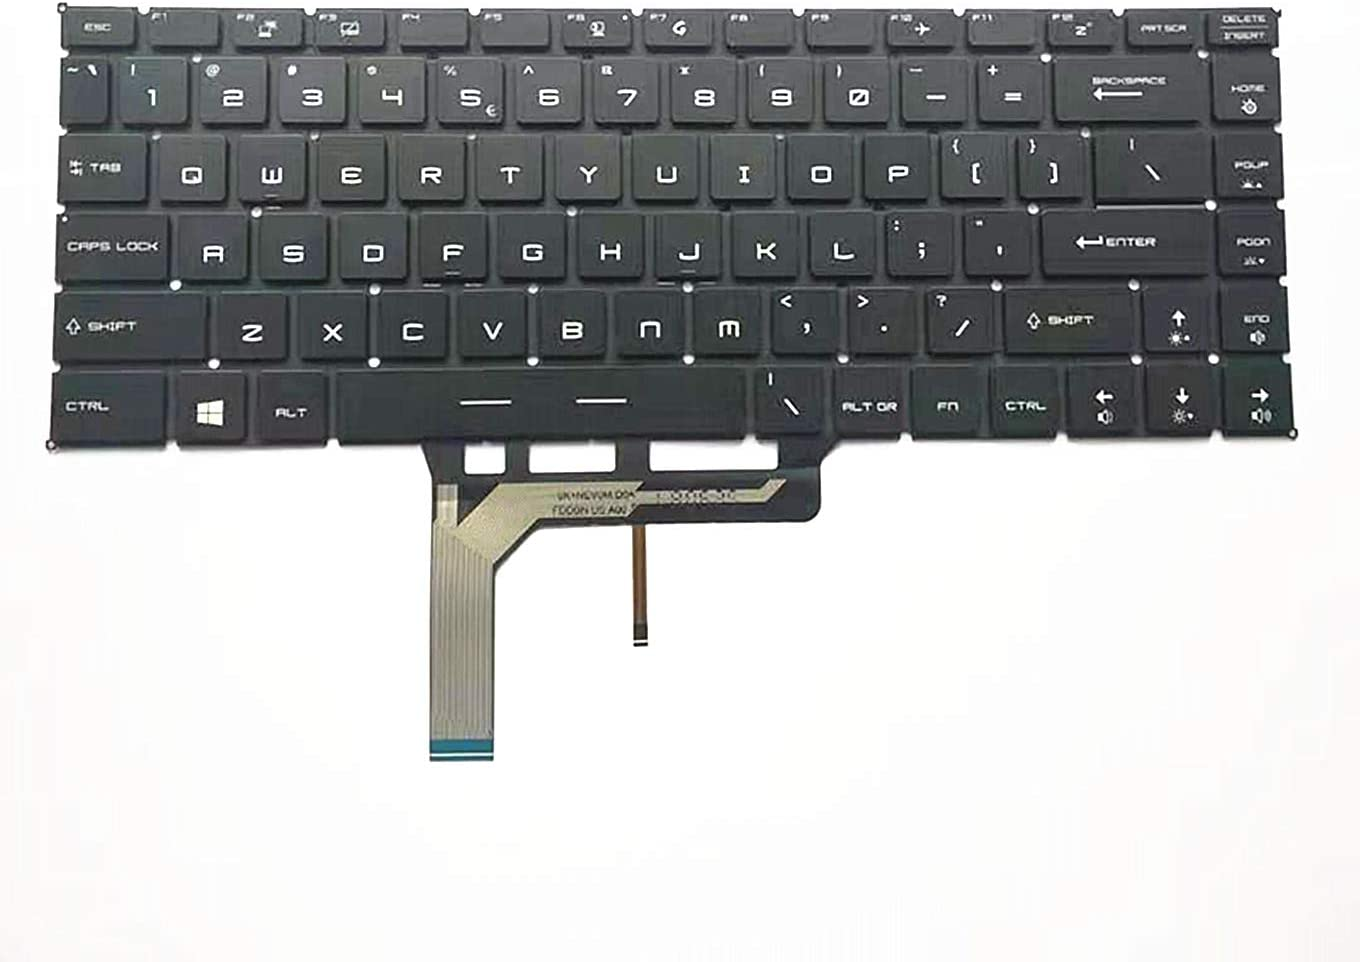 QUETTERLEE Replacement New US Black English Backlit Laptop Keyboard for MSI GS65 GS65VR P65 WP65 WS65 PS63 GF63 PS42 MS-16Q1 Series 787766-020 US010 NSK-FDABN_B00 White Backlight